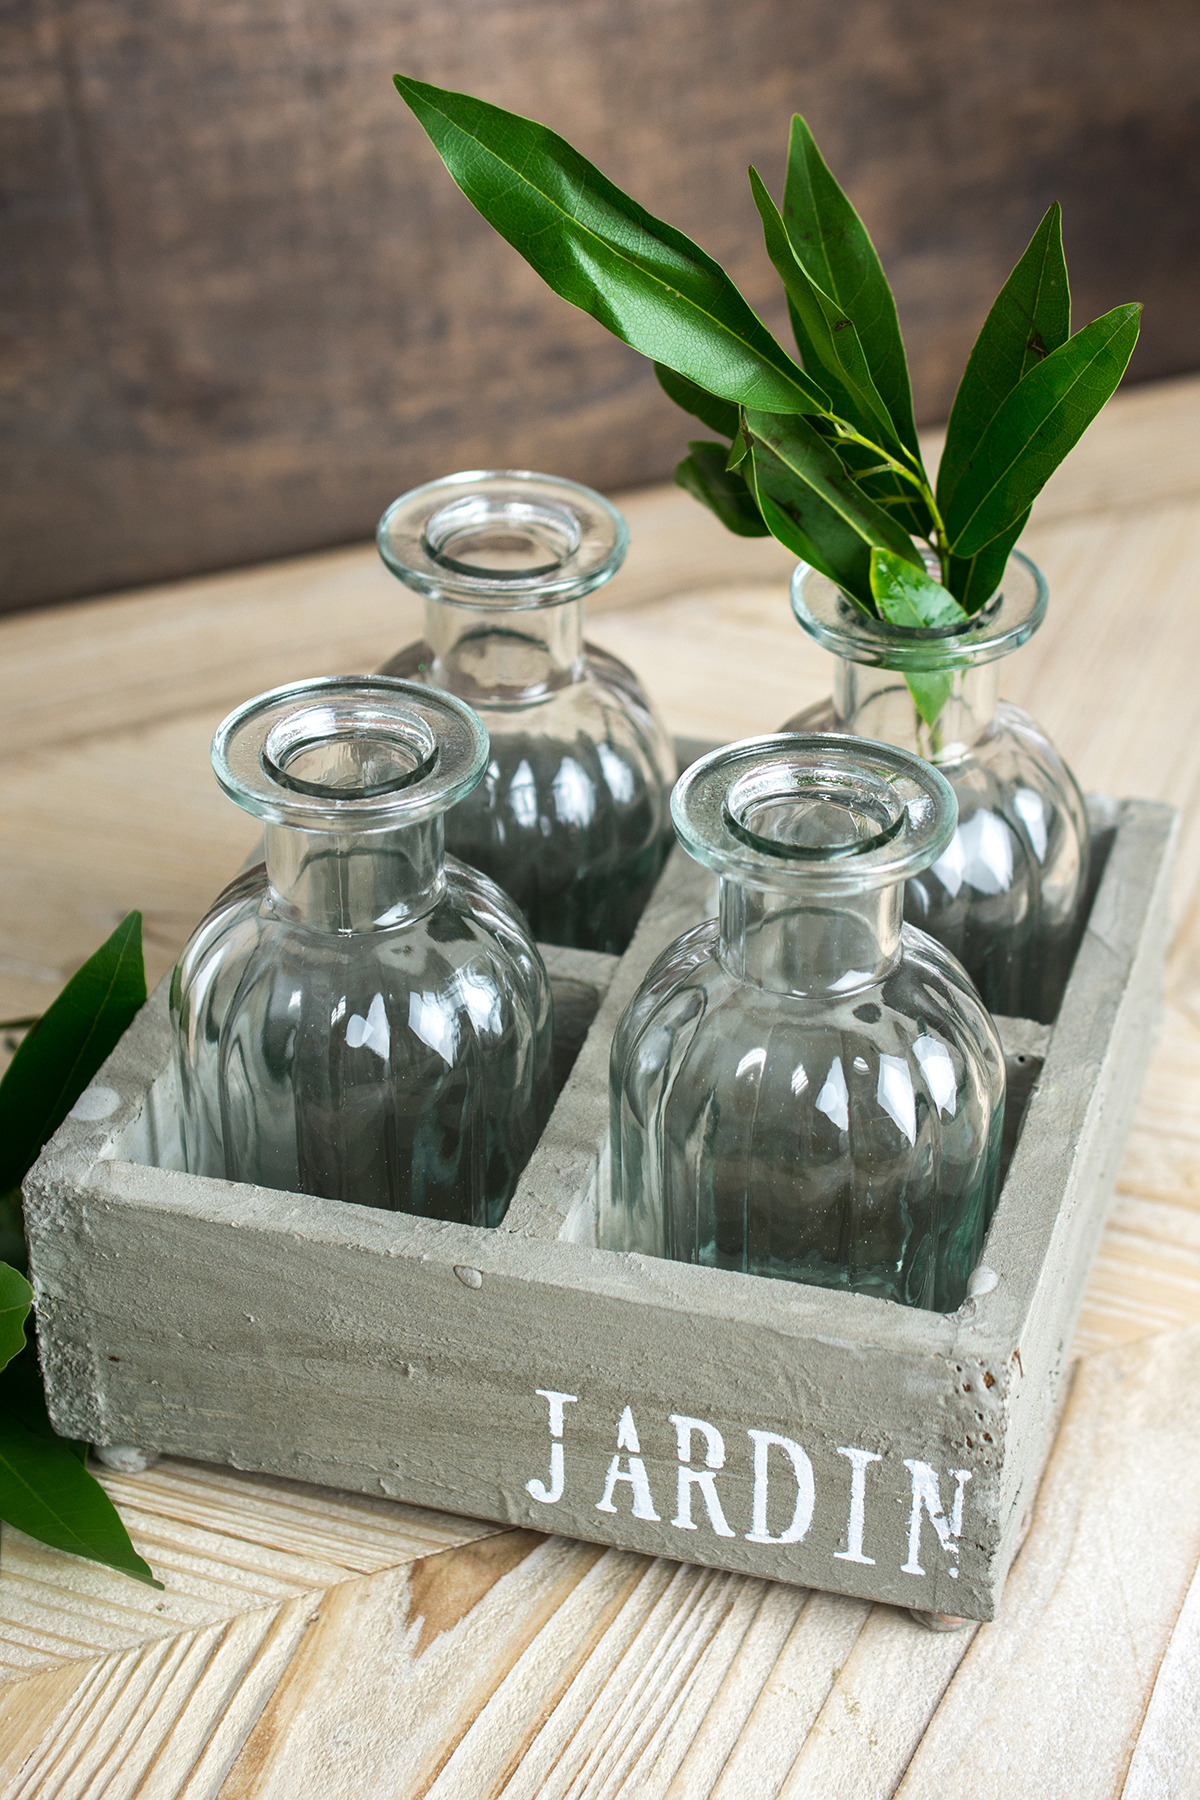 Whitewashed Jardin Crate with 4 Glass Bottles